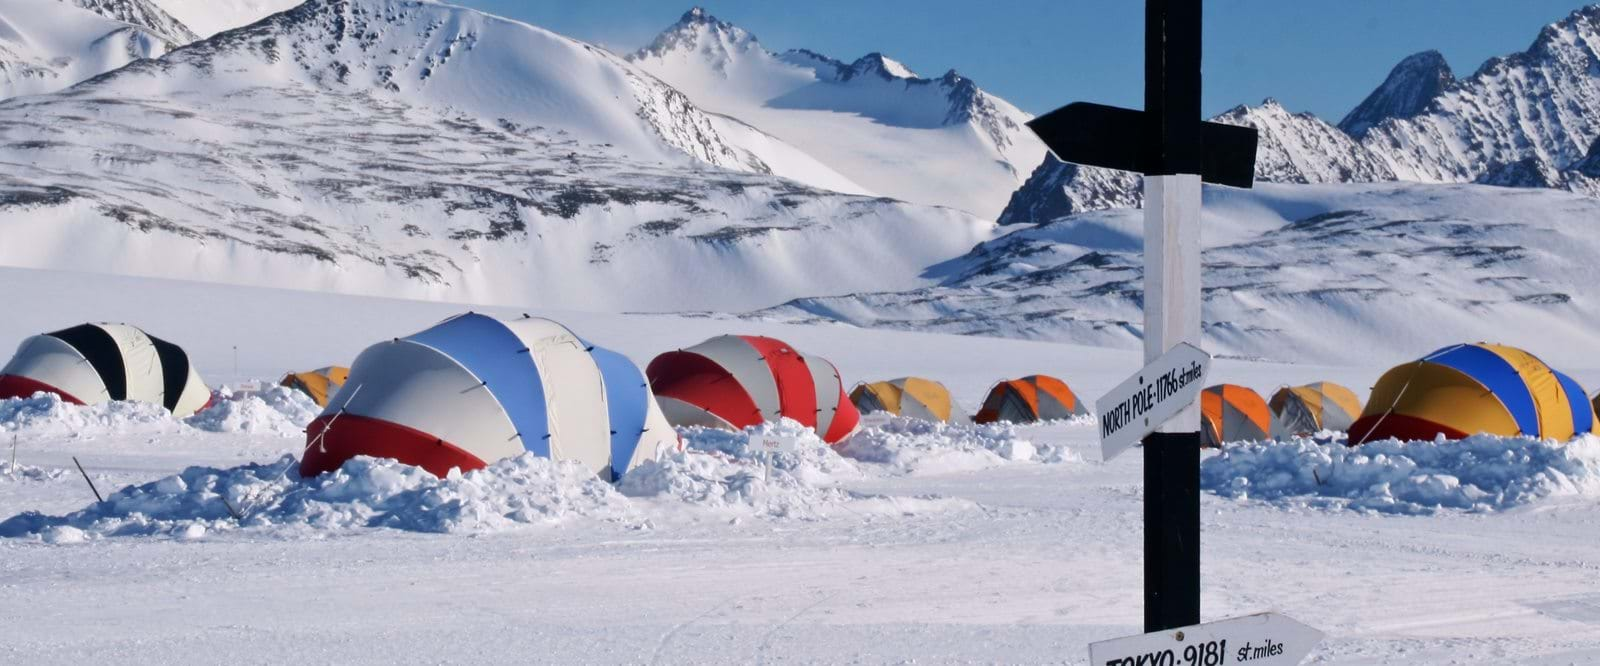 Union glacier camp, Antarktis